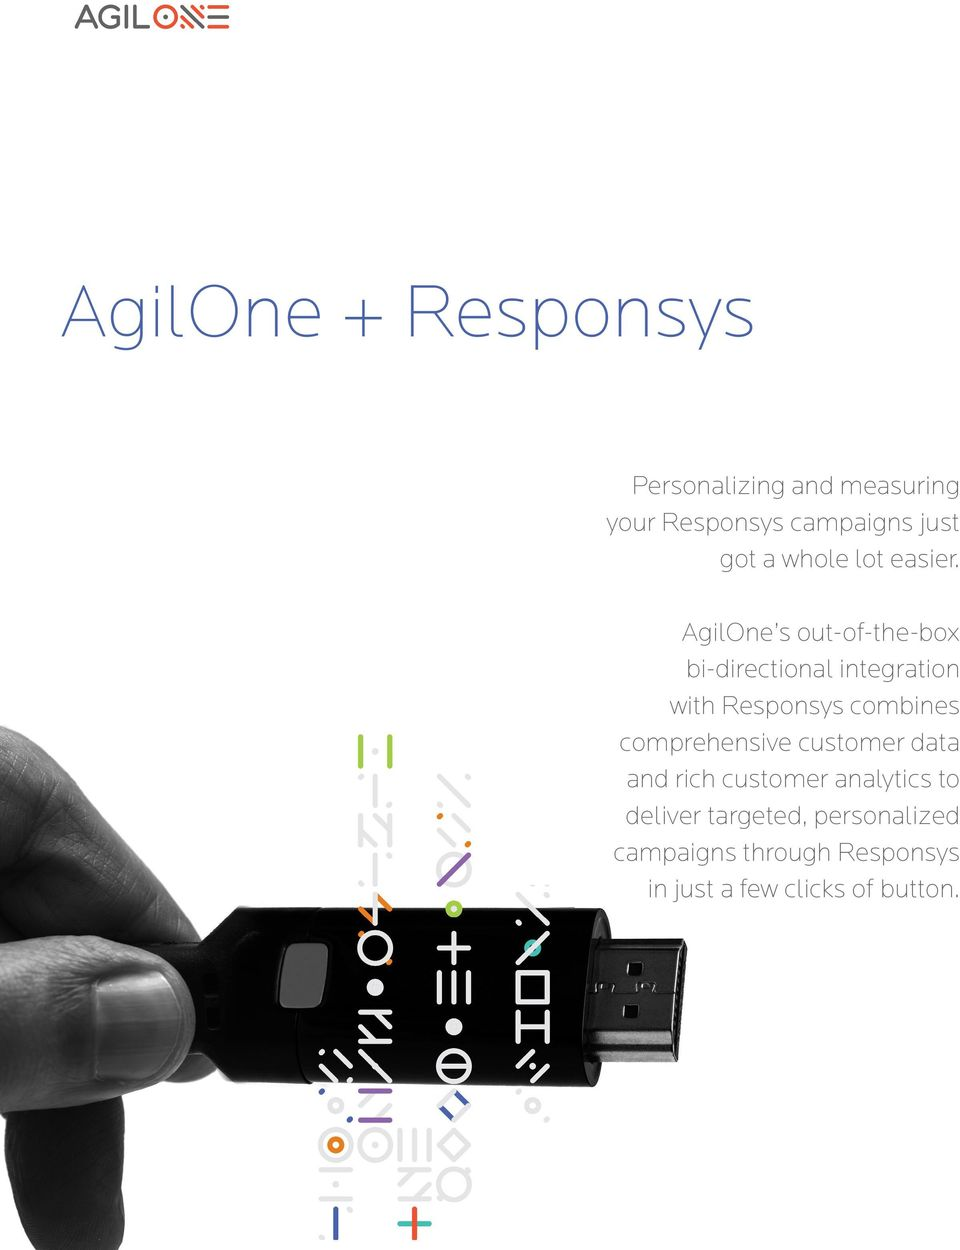 AgilOne s out-of-the-box bi-directional integration with Responsys combines